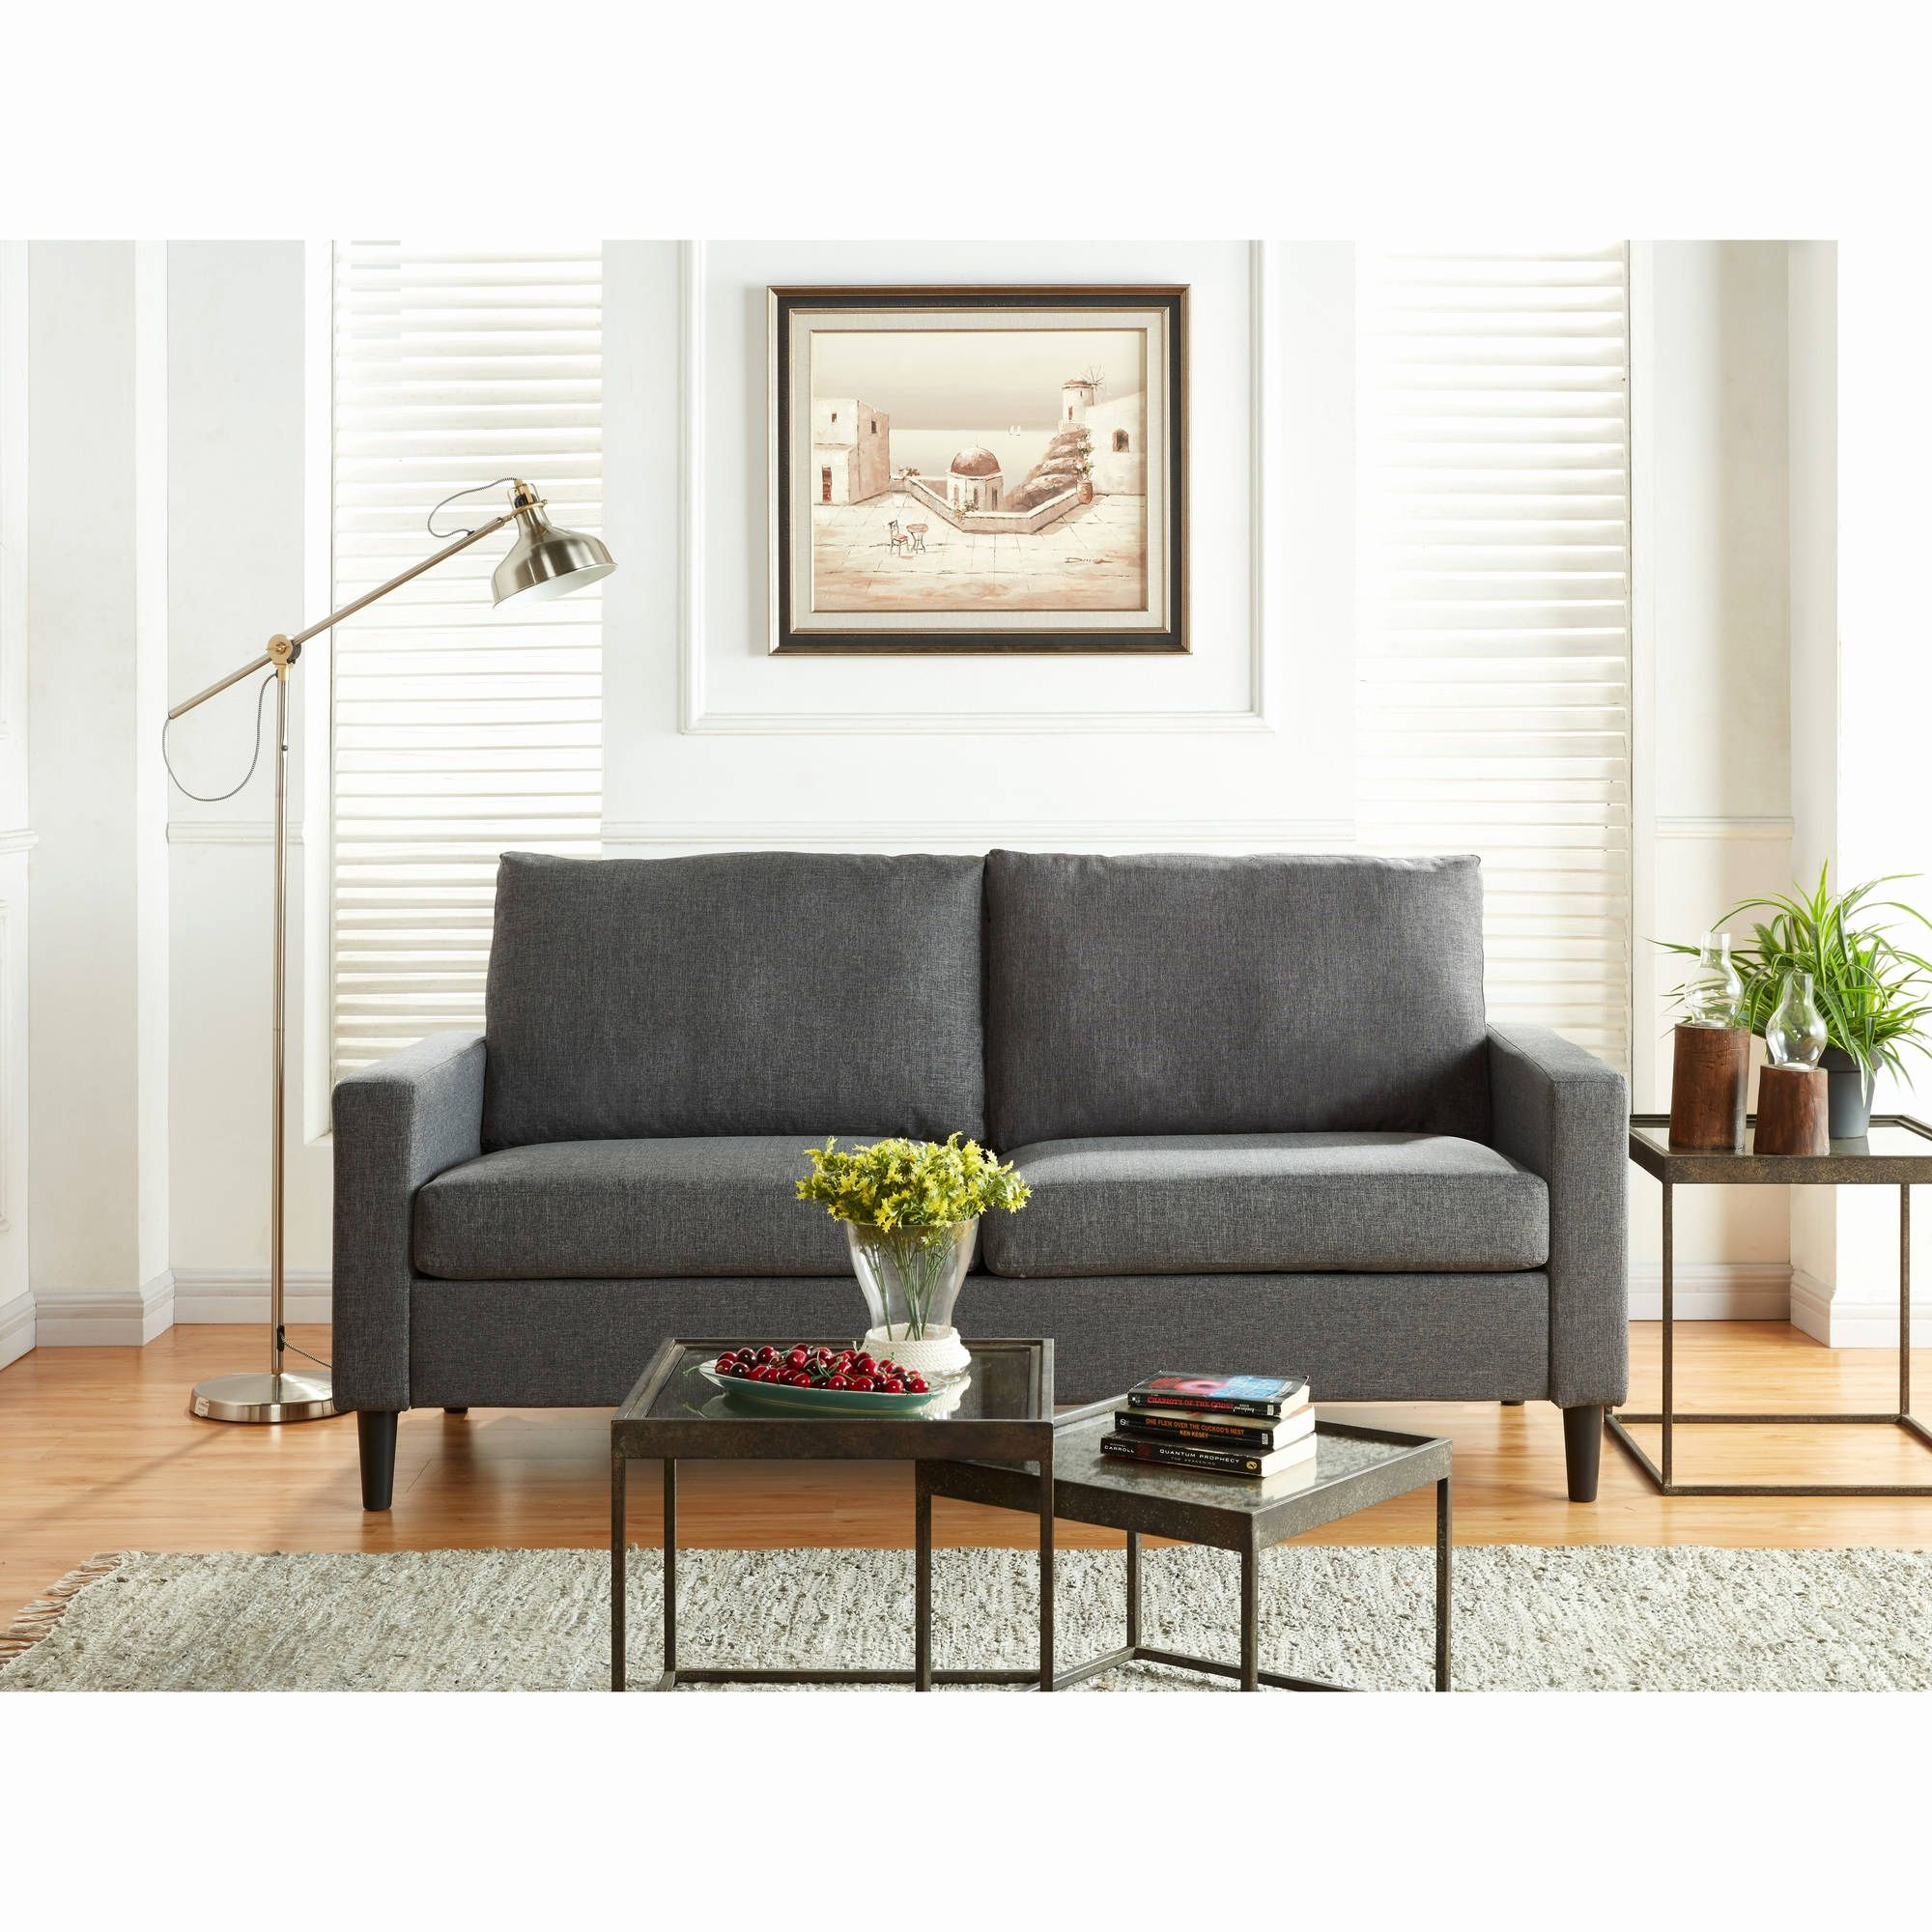 Lovely Apartment Sofas And Loveseats Art Magnificent Corner Sofa Clearance Furniture